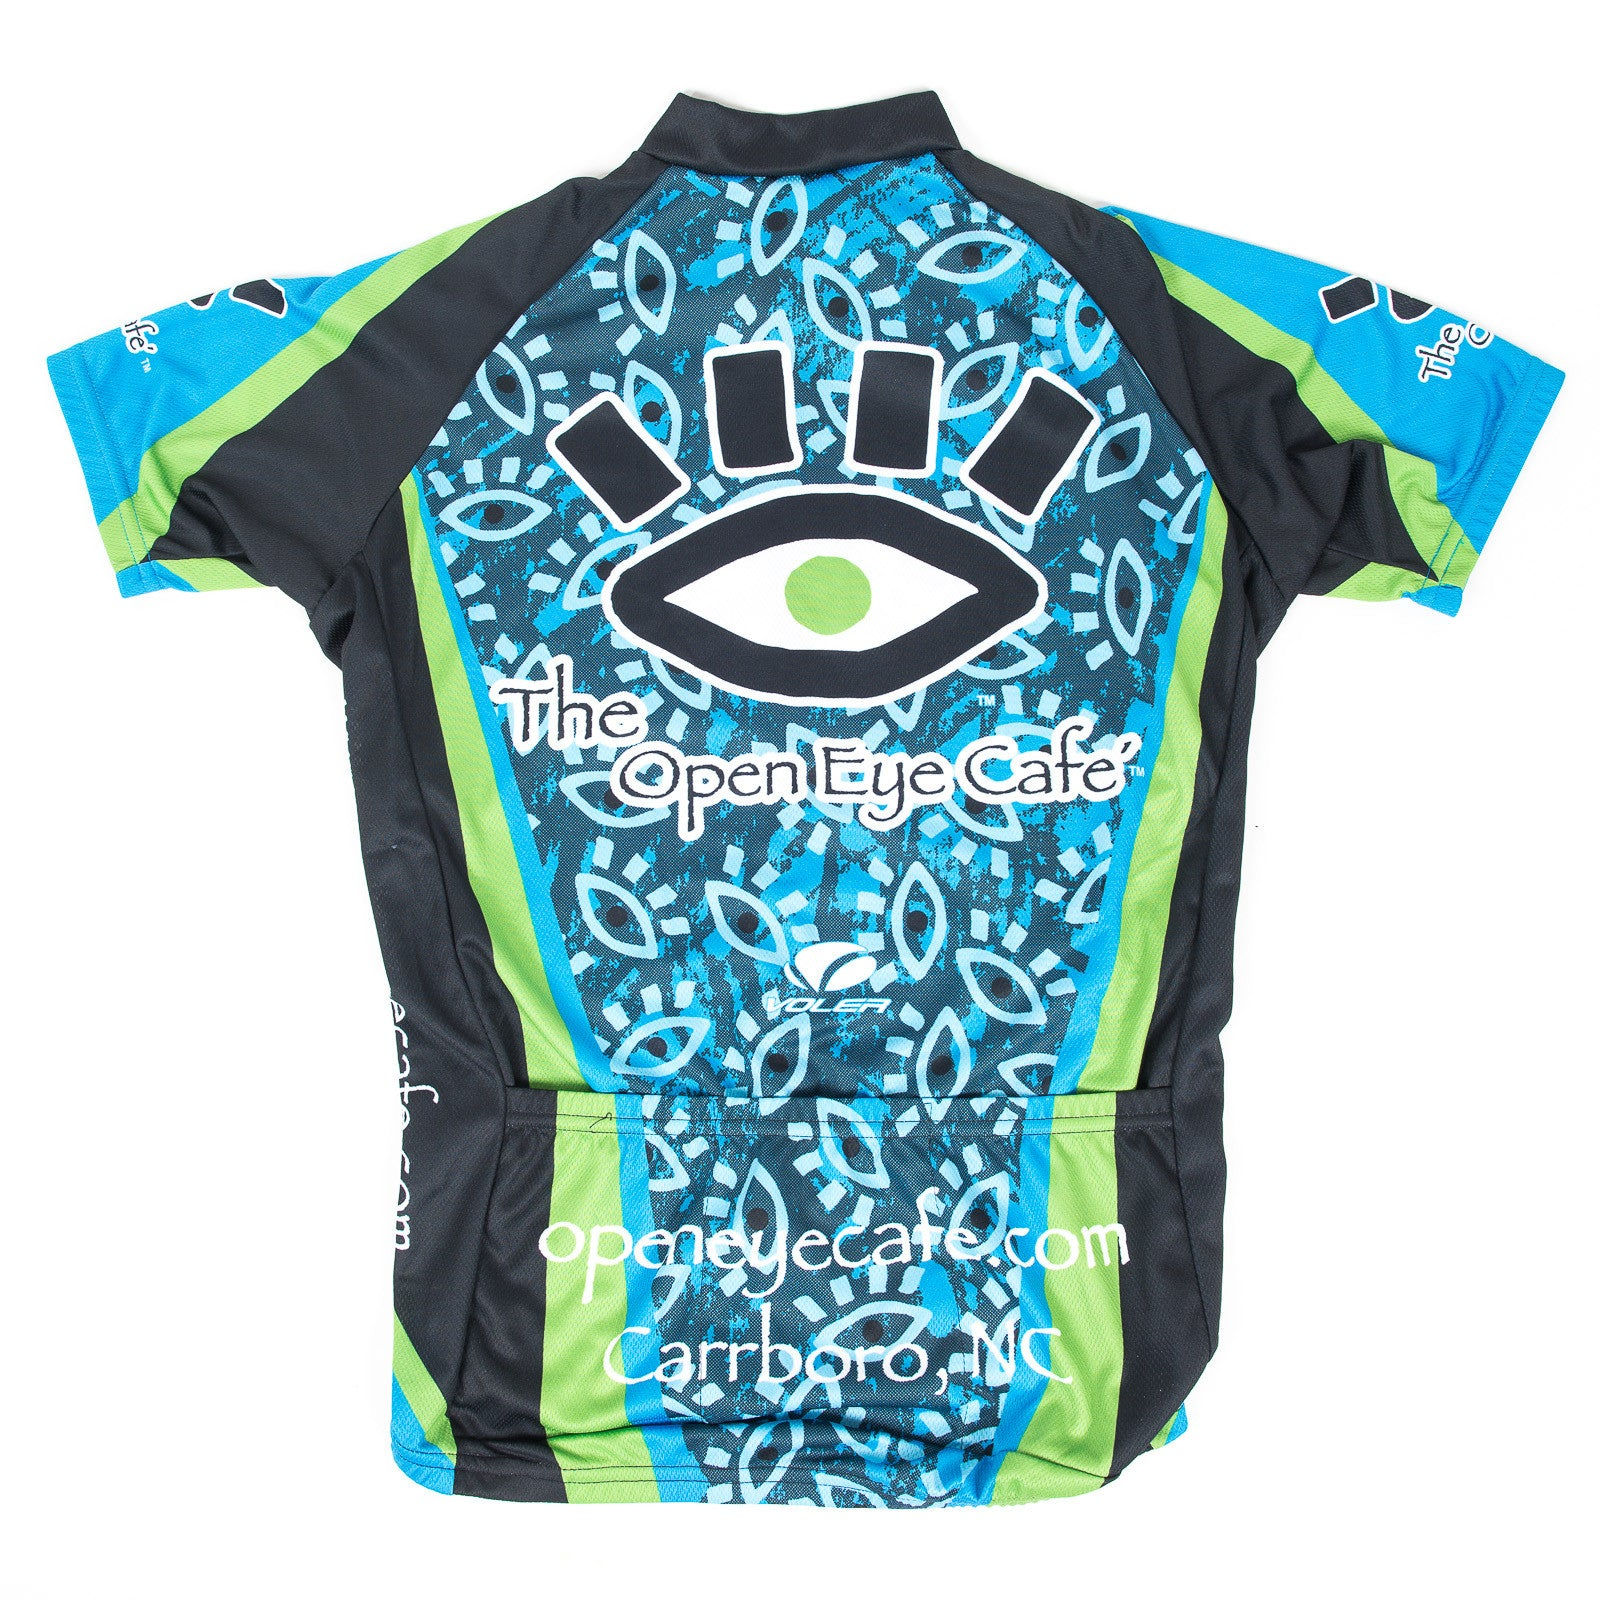 Open Eye Cafe Cycling Jerseys by Voler